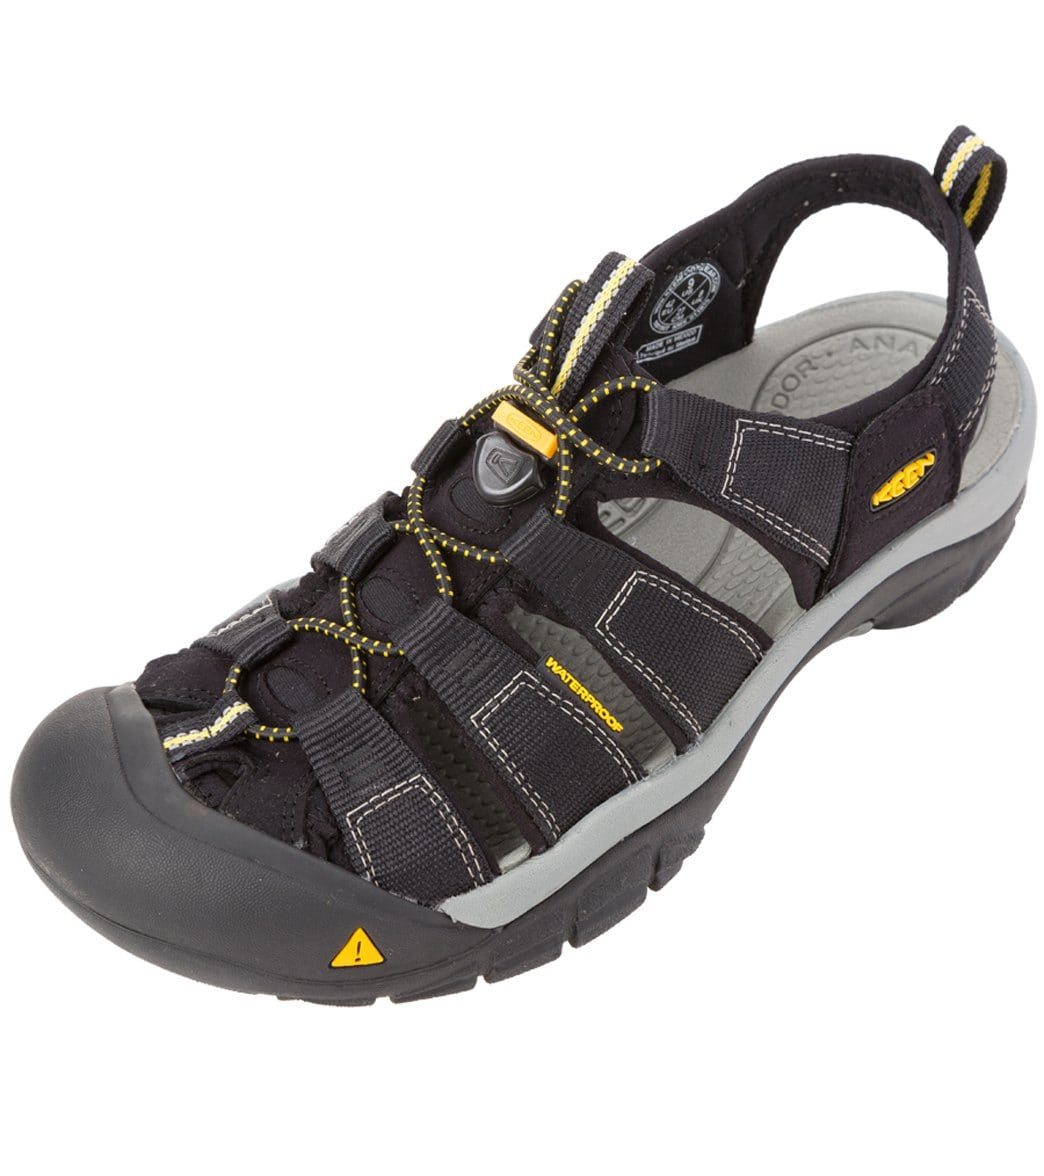 Water Shoes For Men : Sports & Outdoor Shoes | High Cost Performance |  appjubs.com